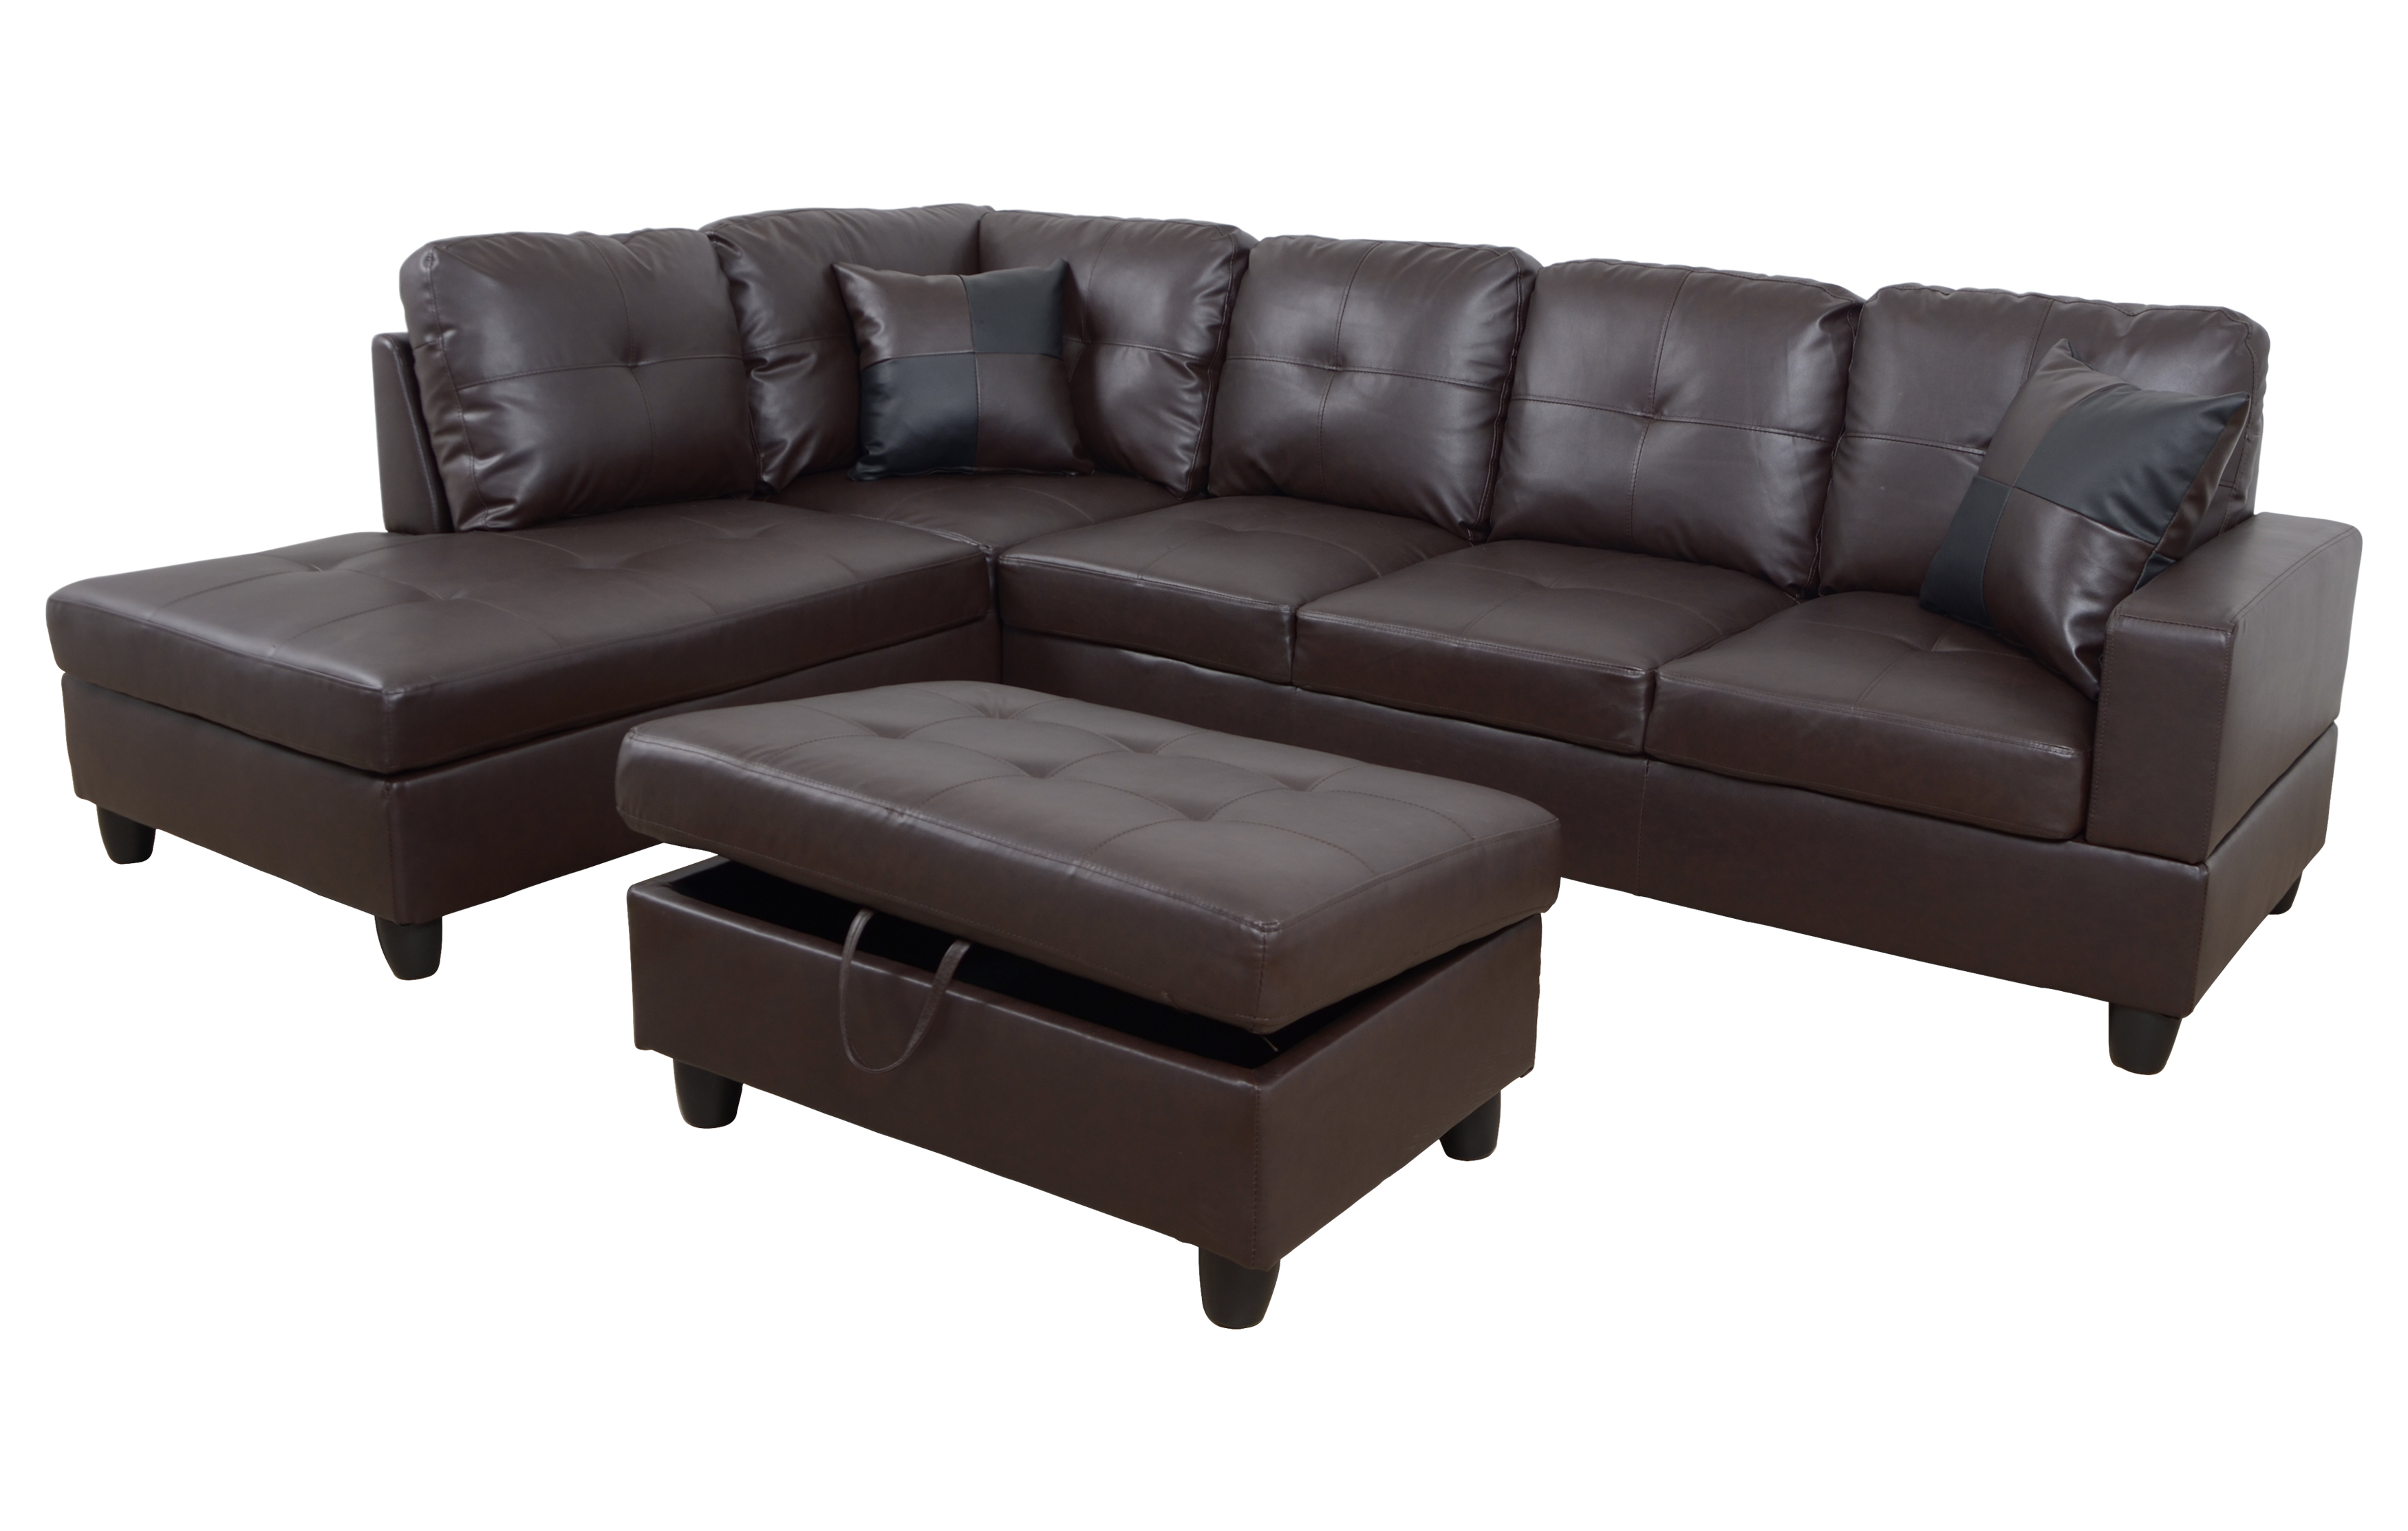 AYCP Furniture L-Shape Traditional Sectional Sofa Set with Ottoman, Left  Hand Facing Chaise, Faux Leather Upholstery Material, Brown Color, More ...